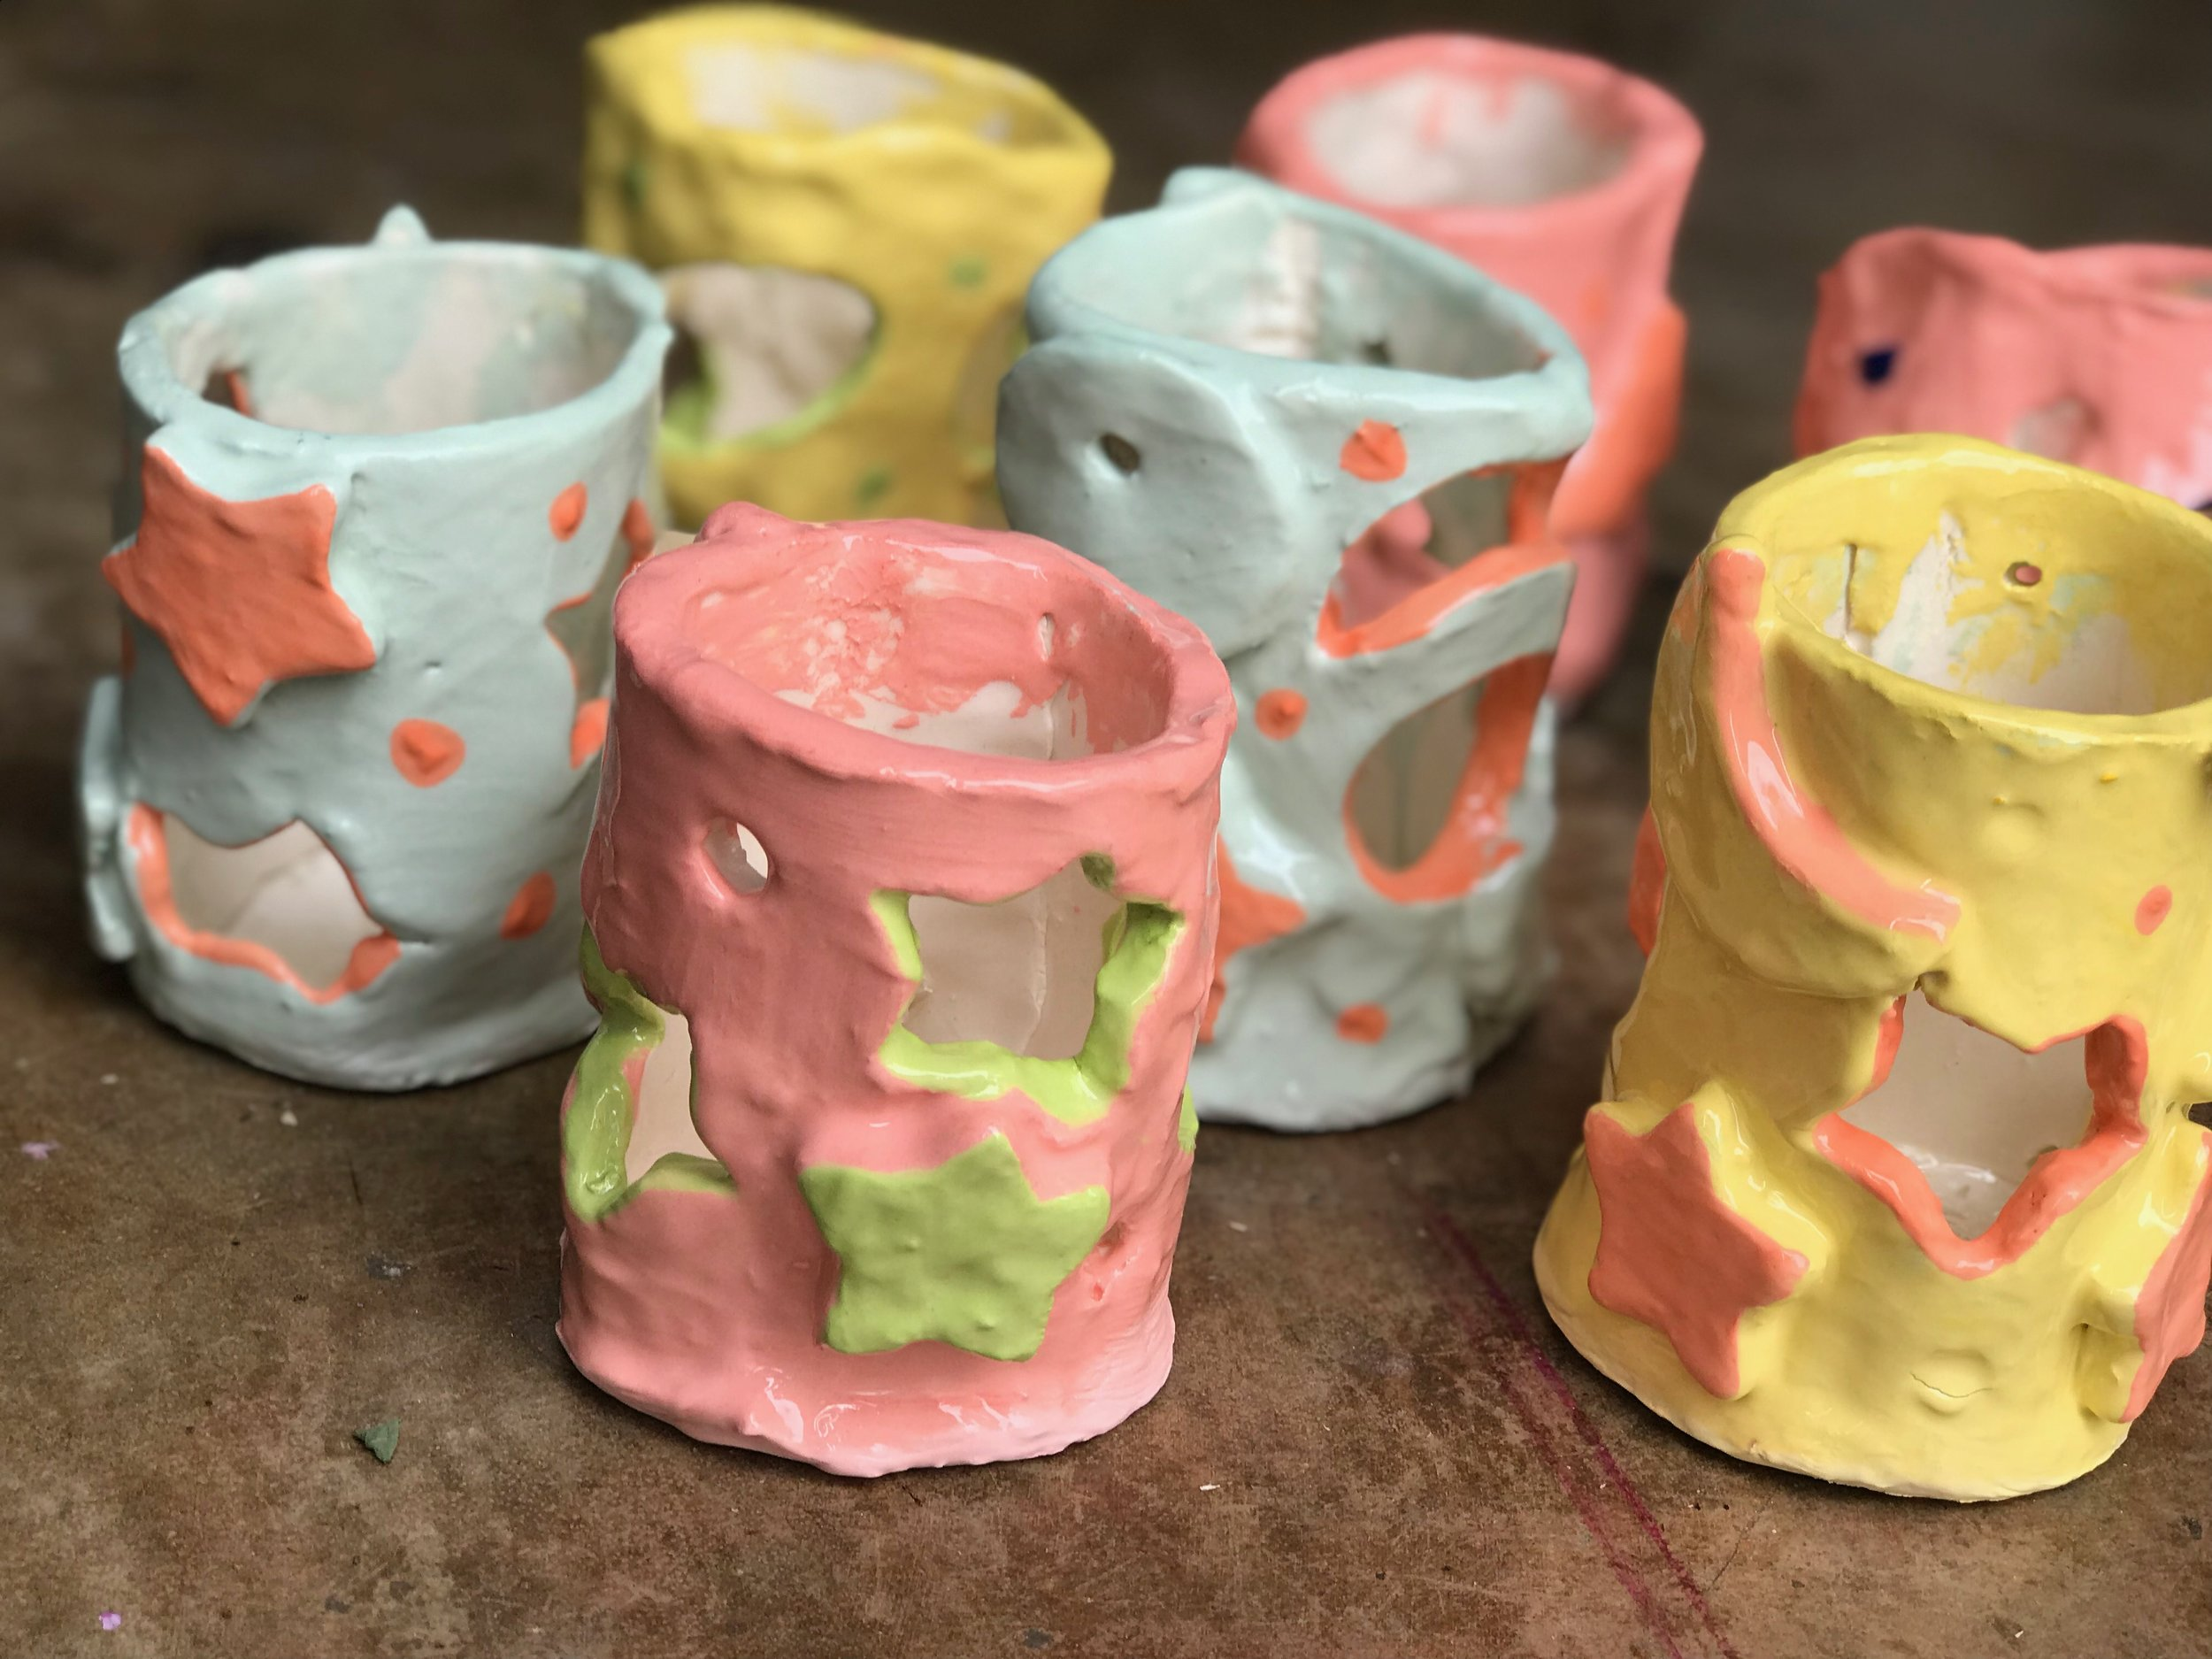 Paint Love summer art project with Our House Atlanta preschool, clay luminaries with clay artist Nikita Raper